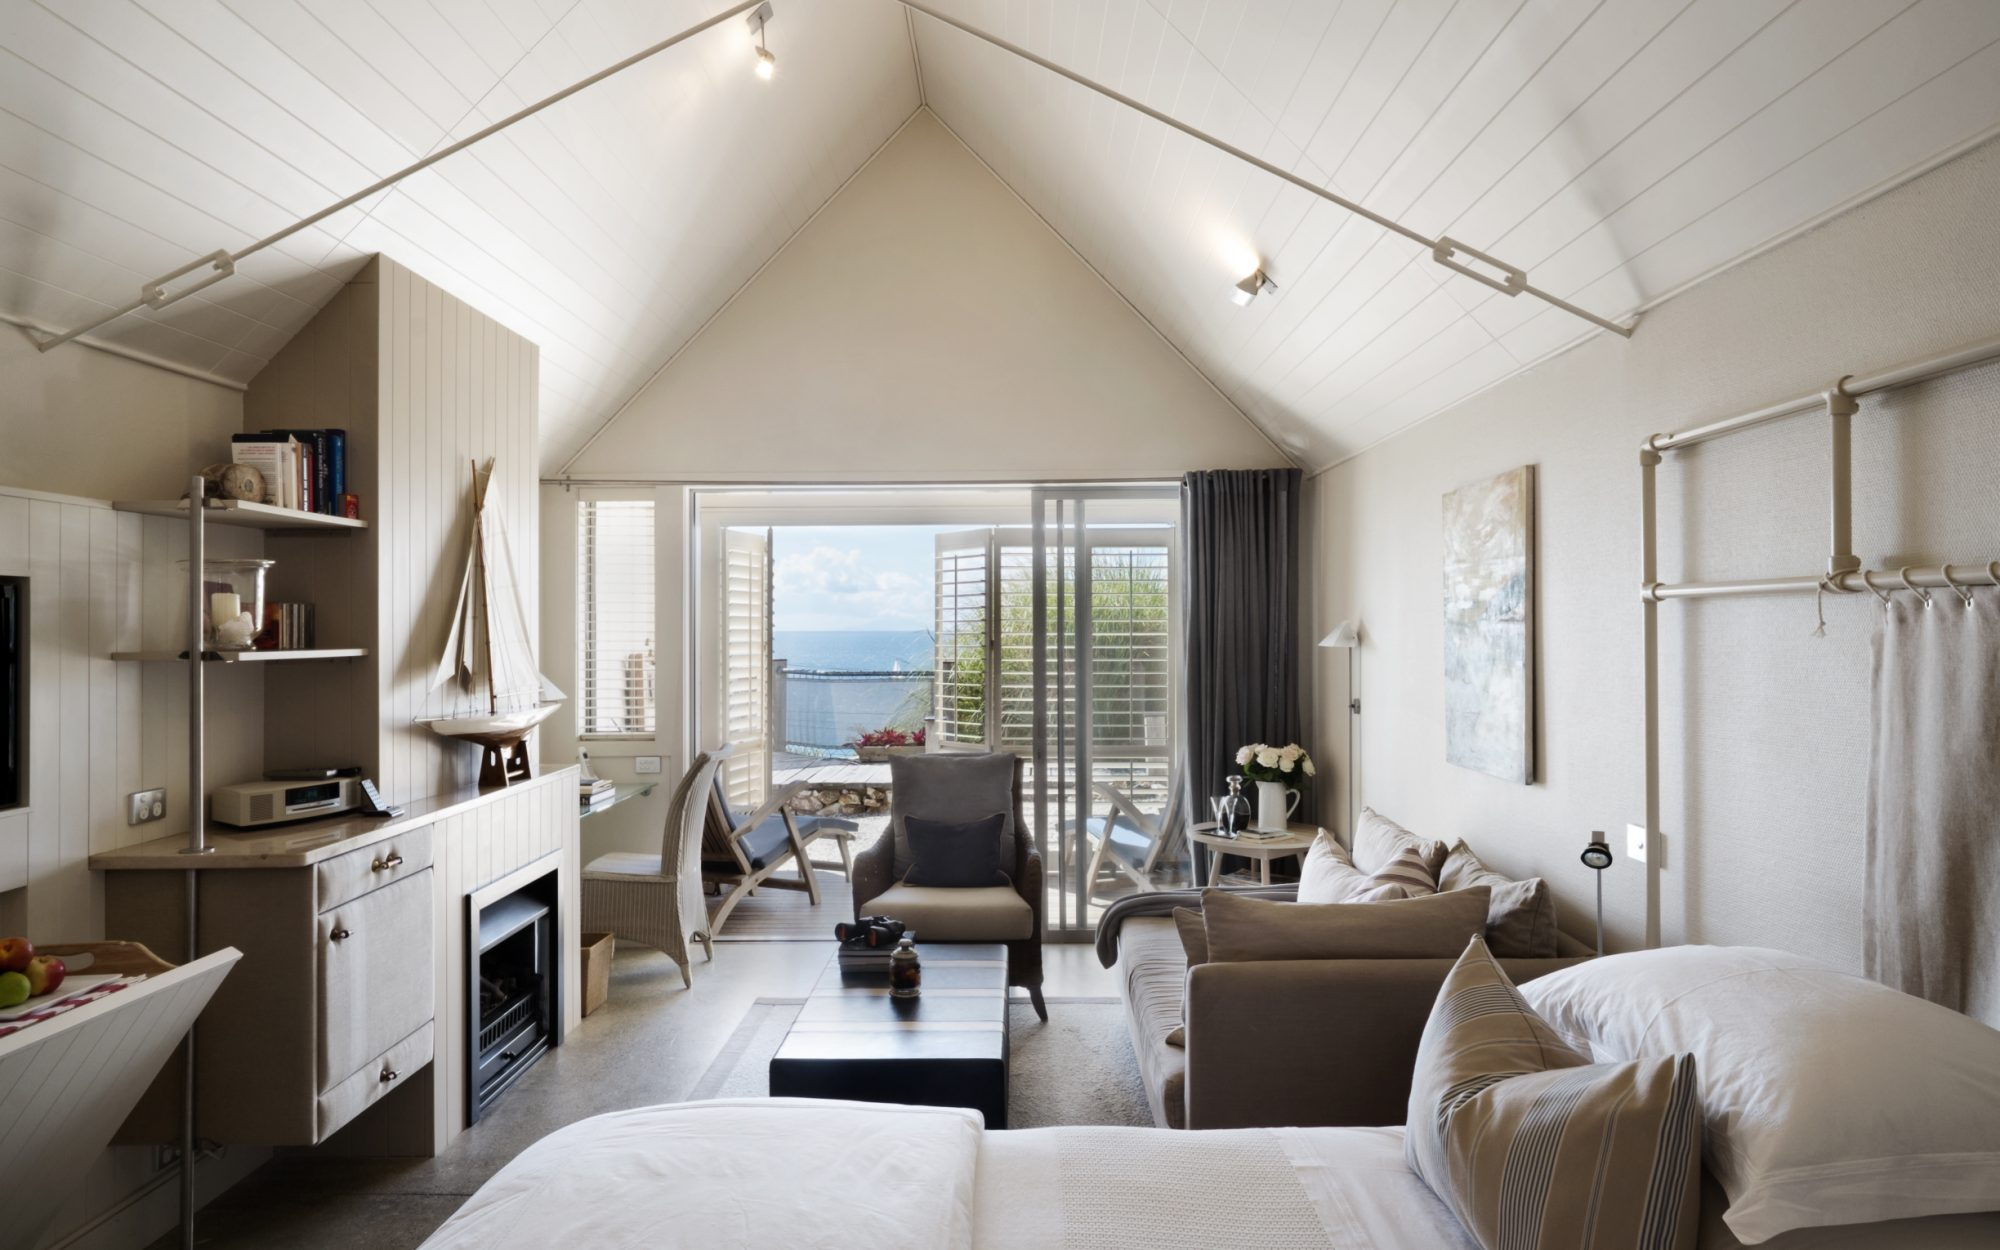 These Are the Best Hotels for Solo Travelers: The Boatshed, Waiheke Island, New Zealand